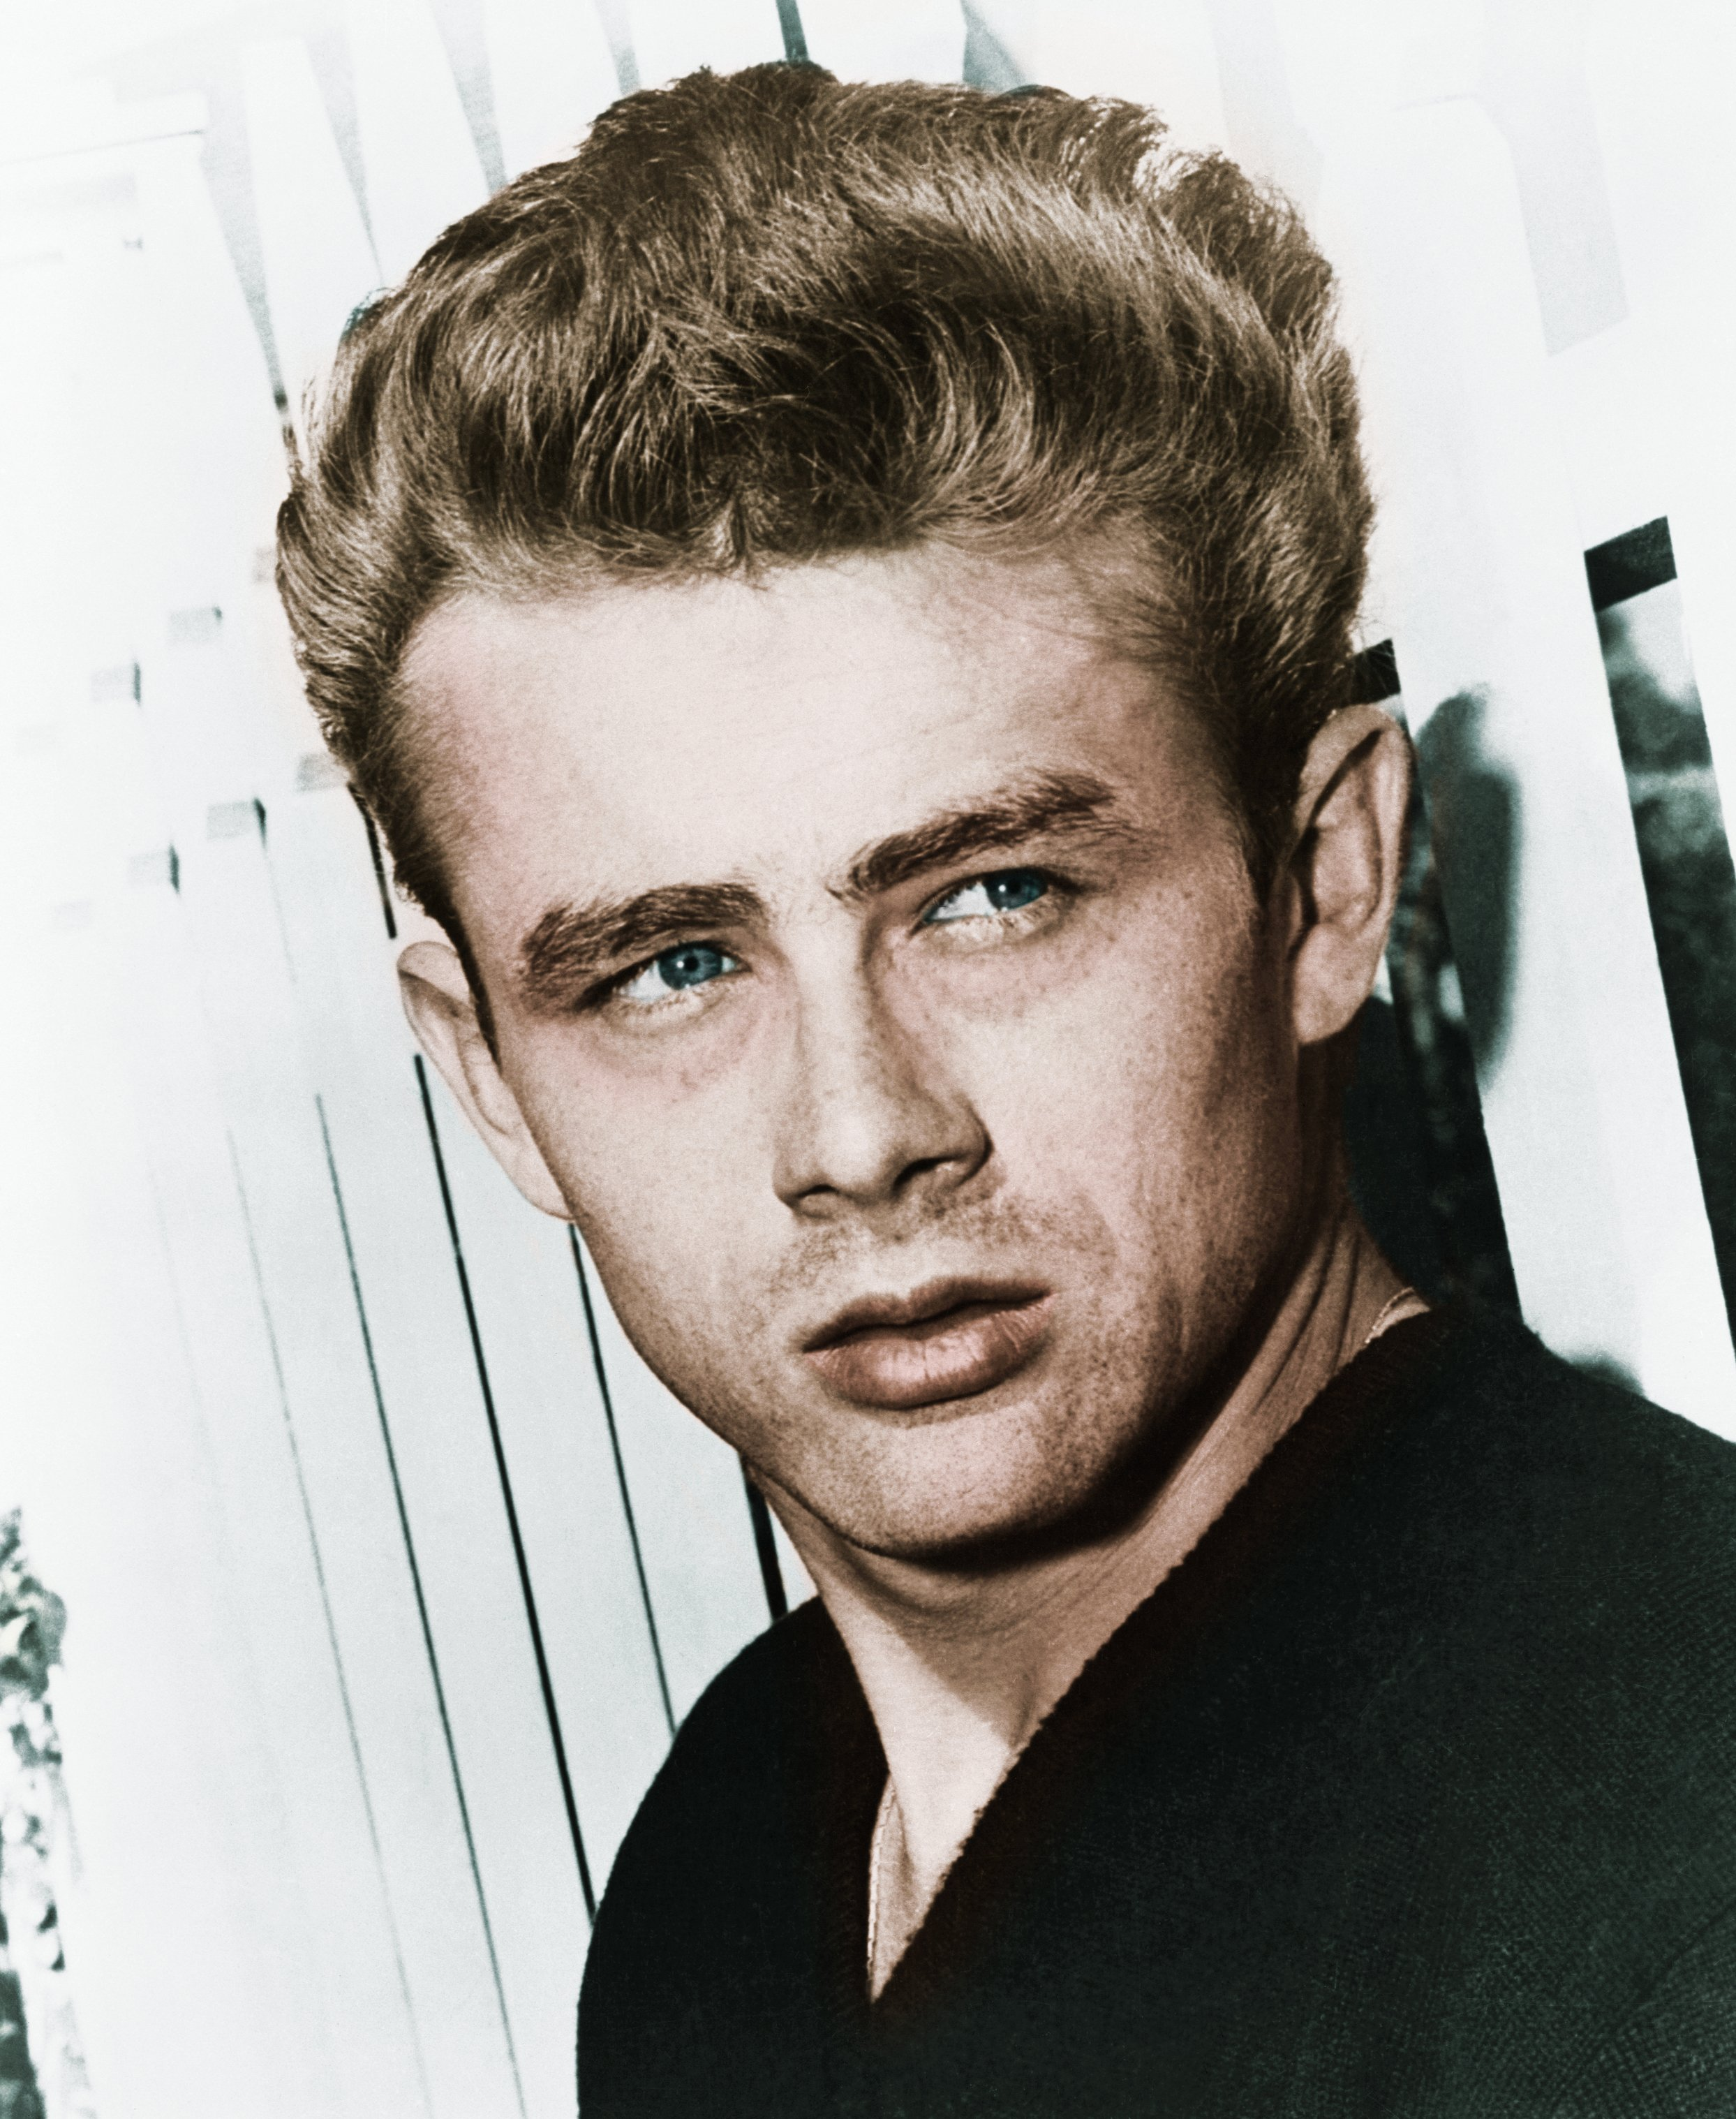 Actor James Dean leaning against a picket fence. | Source: Getty Images